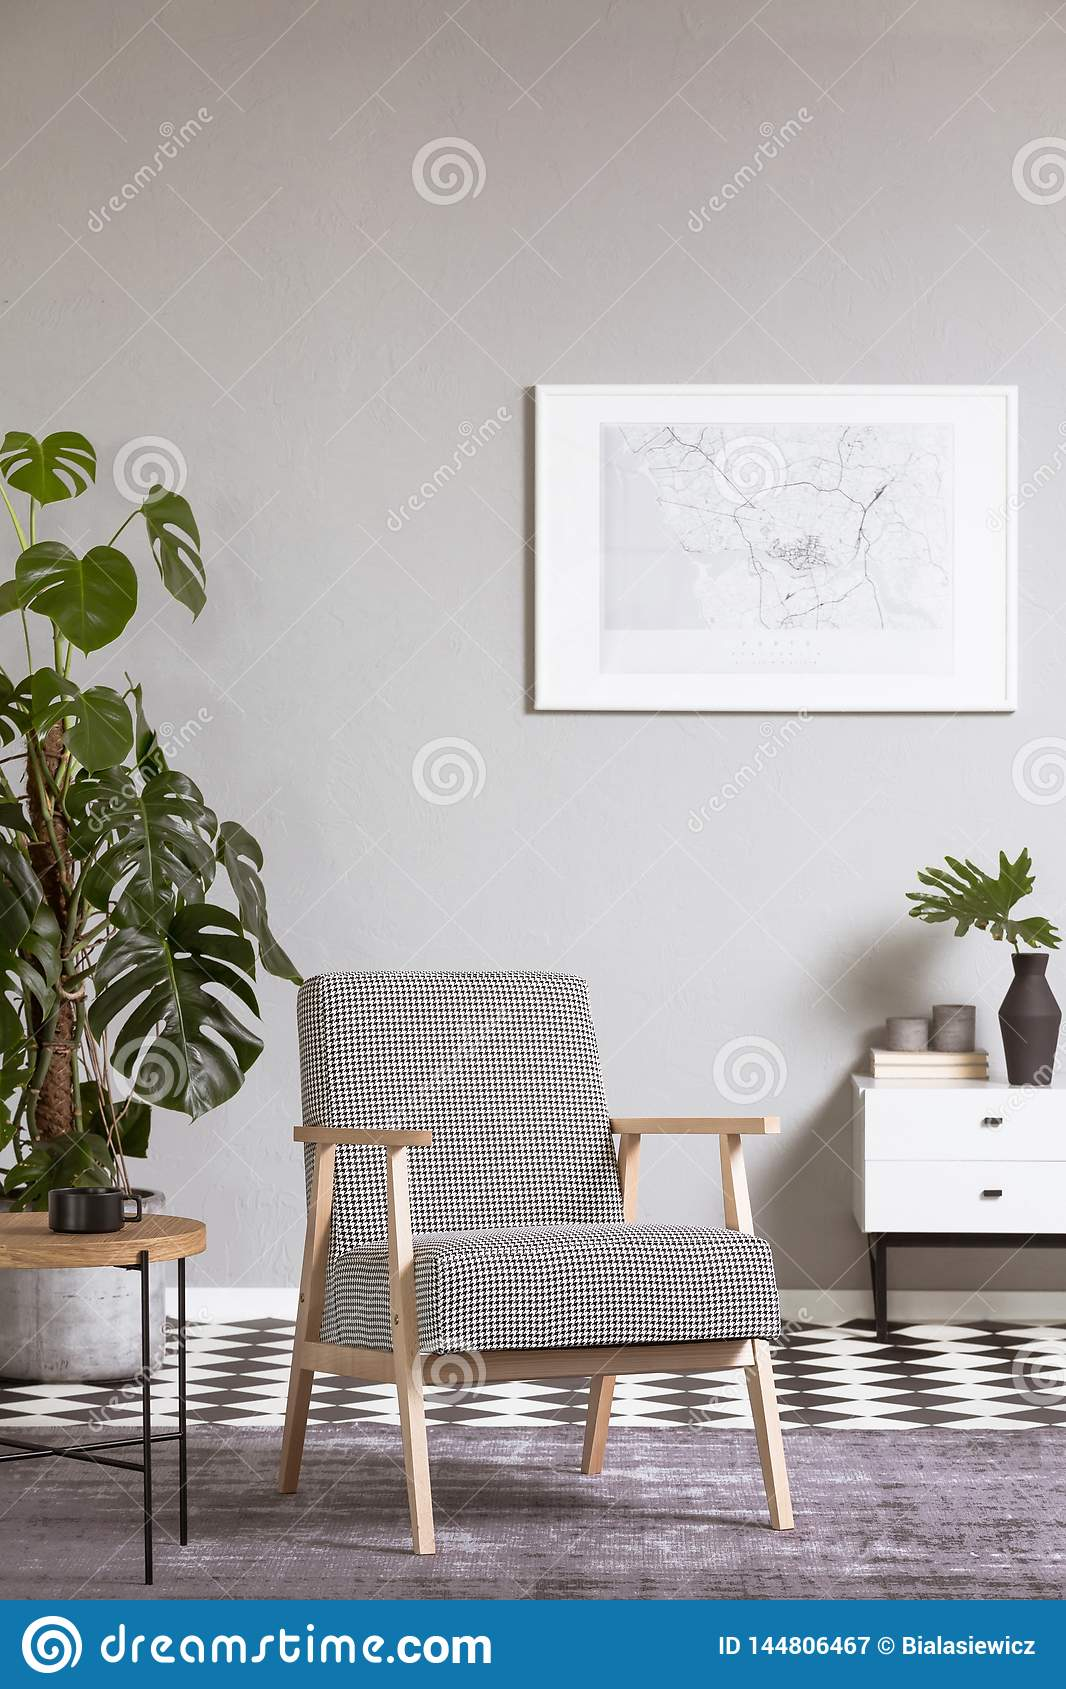 Elegant vintage armchair in living room interior with painting on the wall